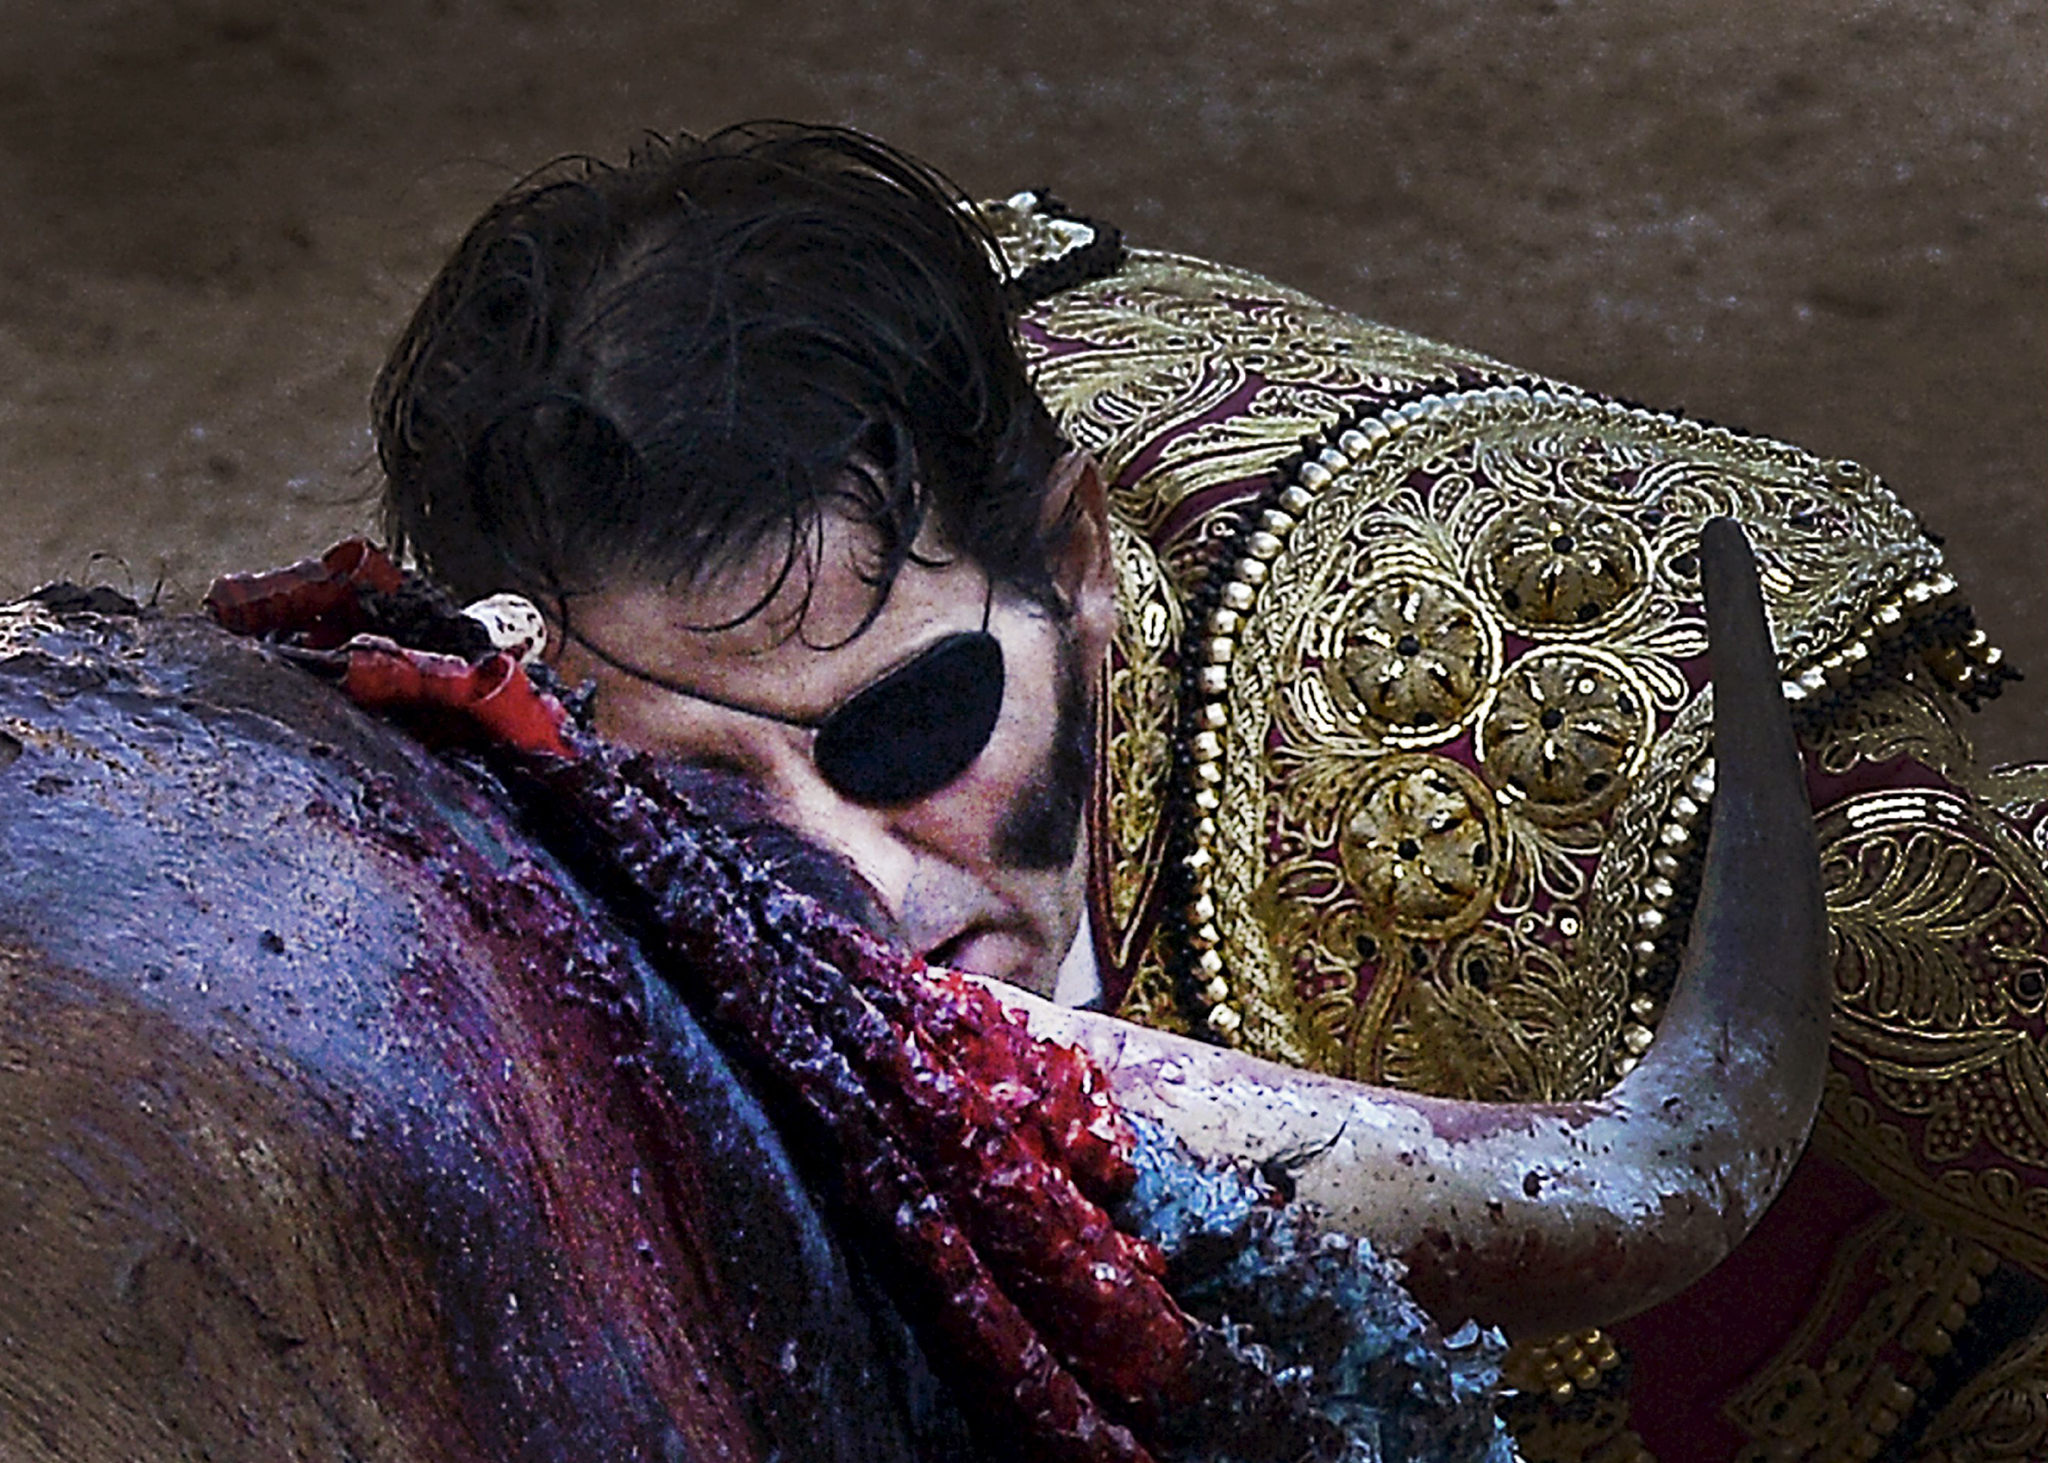 "REUTERS PICTURE HIGHLIGHT...ATTENTION EDITORS - REUTERS PICTURE HIGHLIGHT PAM26 Spanish bullfighter Juan Jose Padilla performs a pass during a bullfight at the San Fermin festival in Pamplona July 13, 2015. REUTERS/Vincent West      TPX IMAGES OF THE DAY REUTERS NEWS PICTURES HAS NOW MADE IT EASIER TO FIND THE BEST PHOTOS FROM THE MOST IMPORTANT STORIES AND TOP STANDALONES EACH DAY. Search for ""TPX"" in the IPTC Supplemental Category field or ""IMAGES OF THE DAY"" in the Caption field and you will find a selection of 80-100 of our daily Top Pictures. REUTERS NEWS PICTURES.  TEMPLATE OUT      TPX IMAGES OF THE DAY"